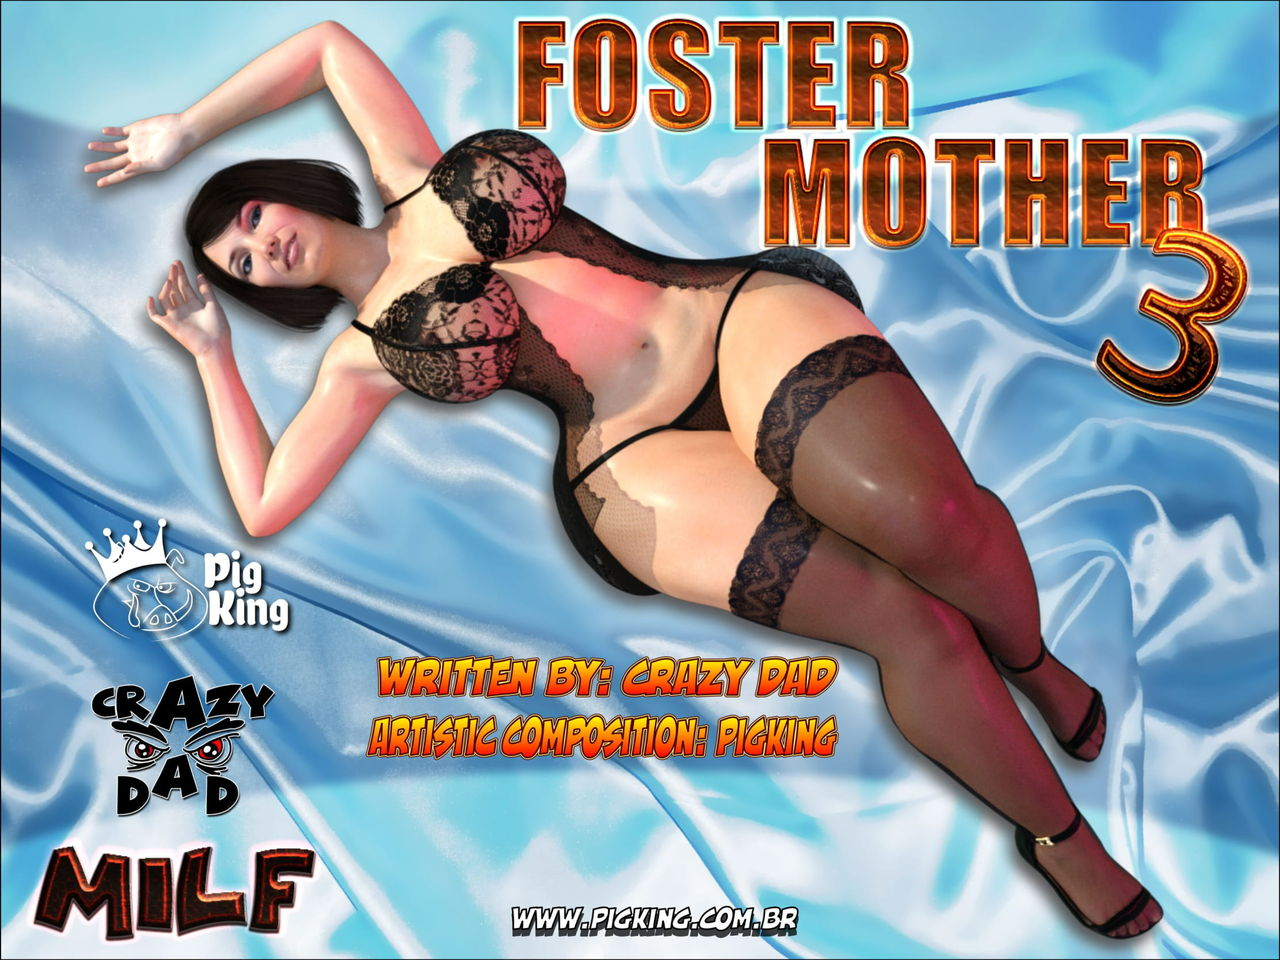 Pig King- Foster Mother Ch #3